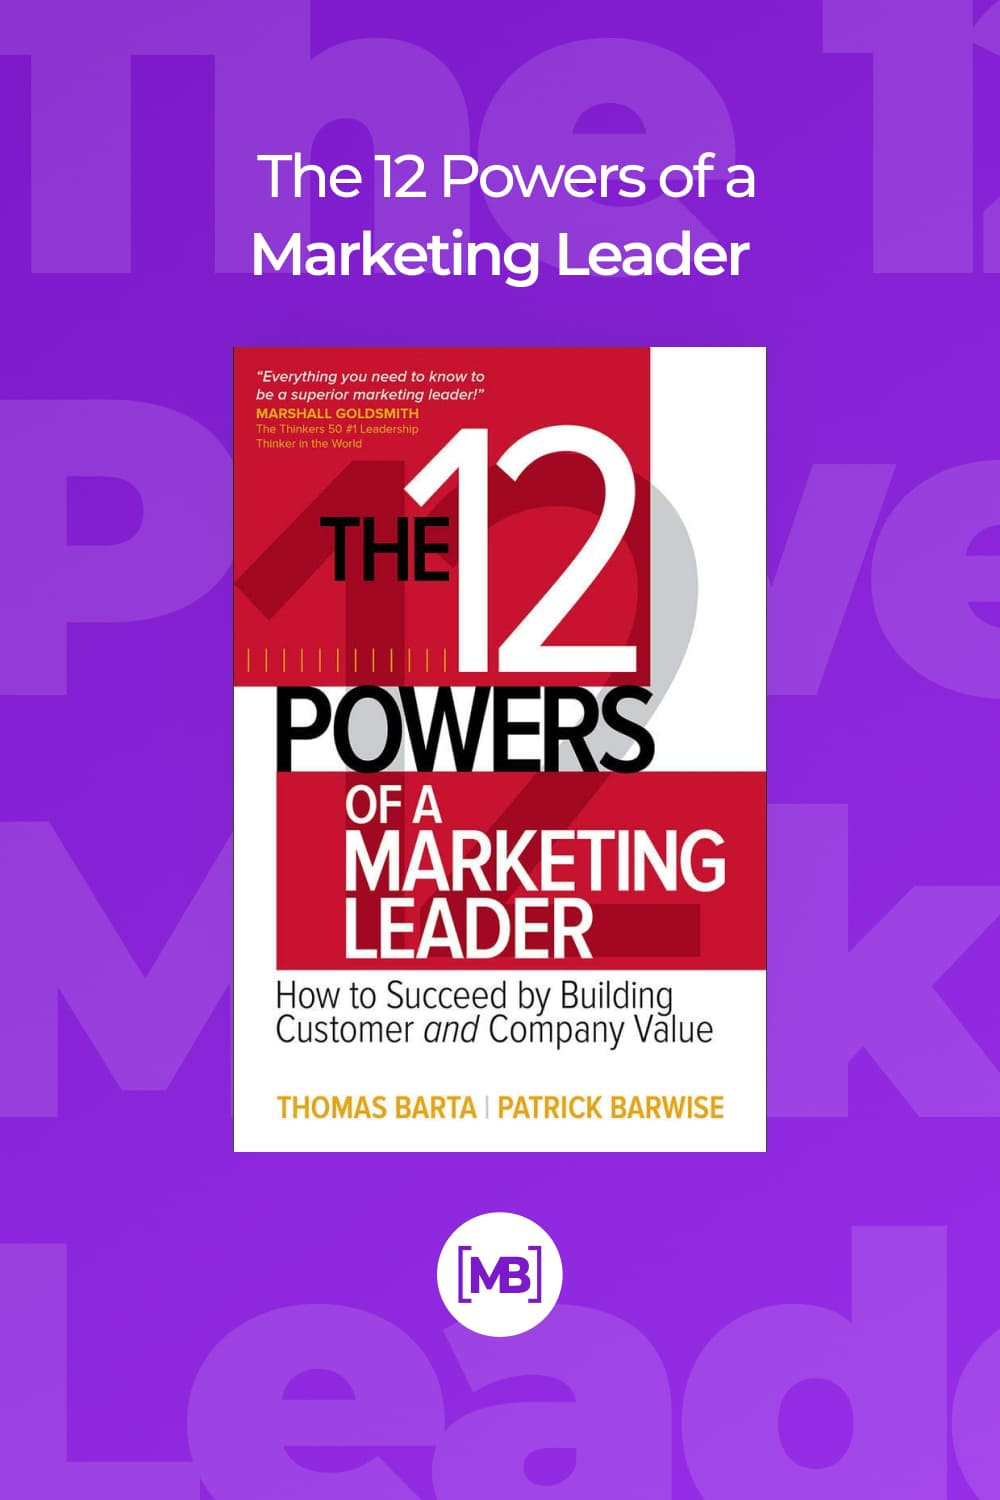 The 12 powers of a marketing leader.